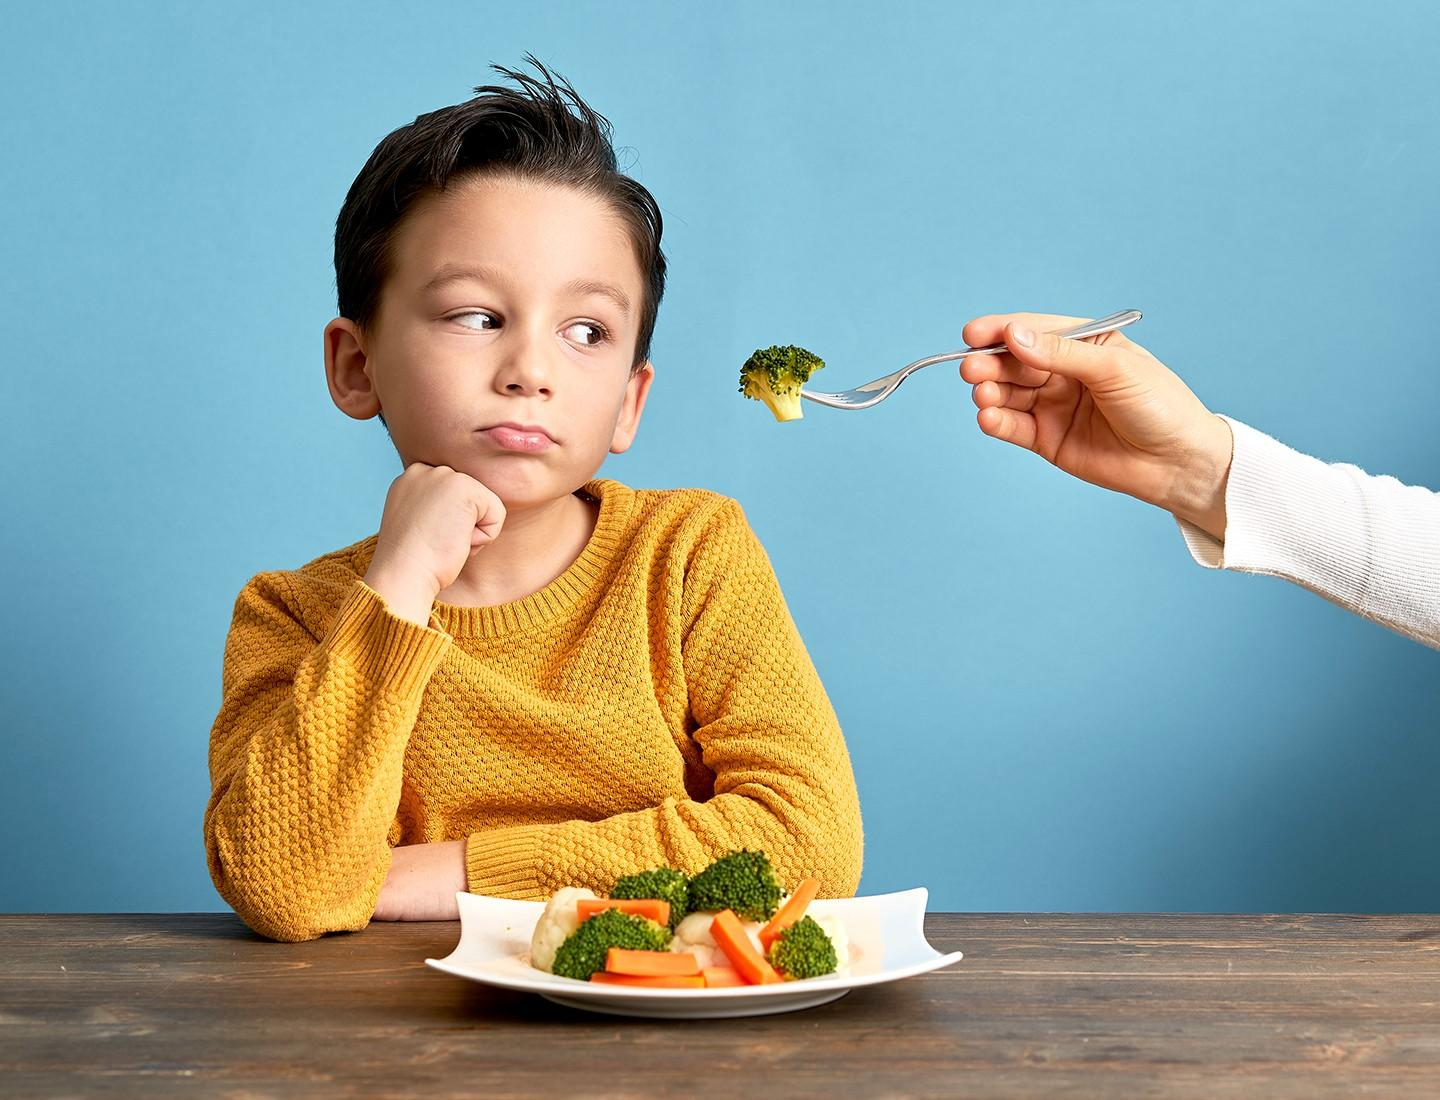 boy refusing to eat vegetables